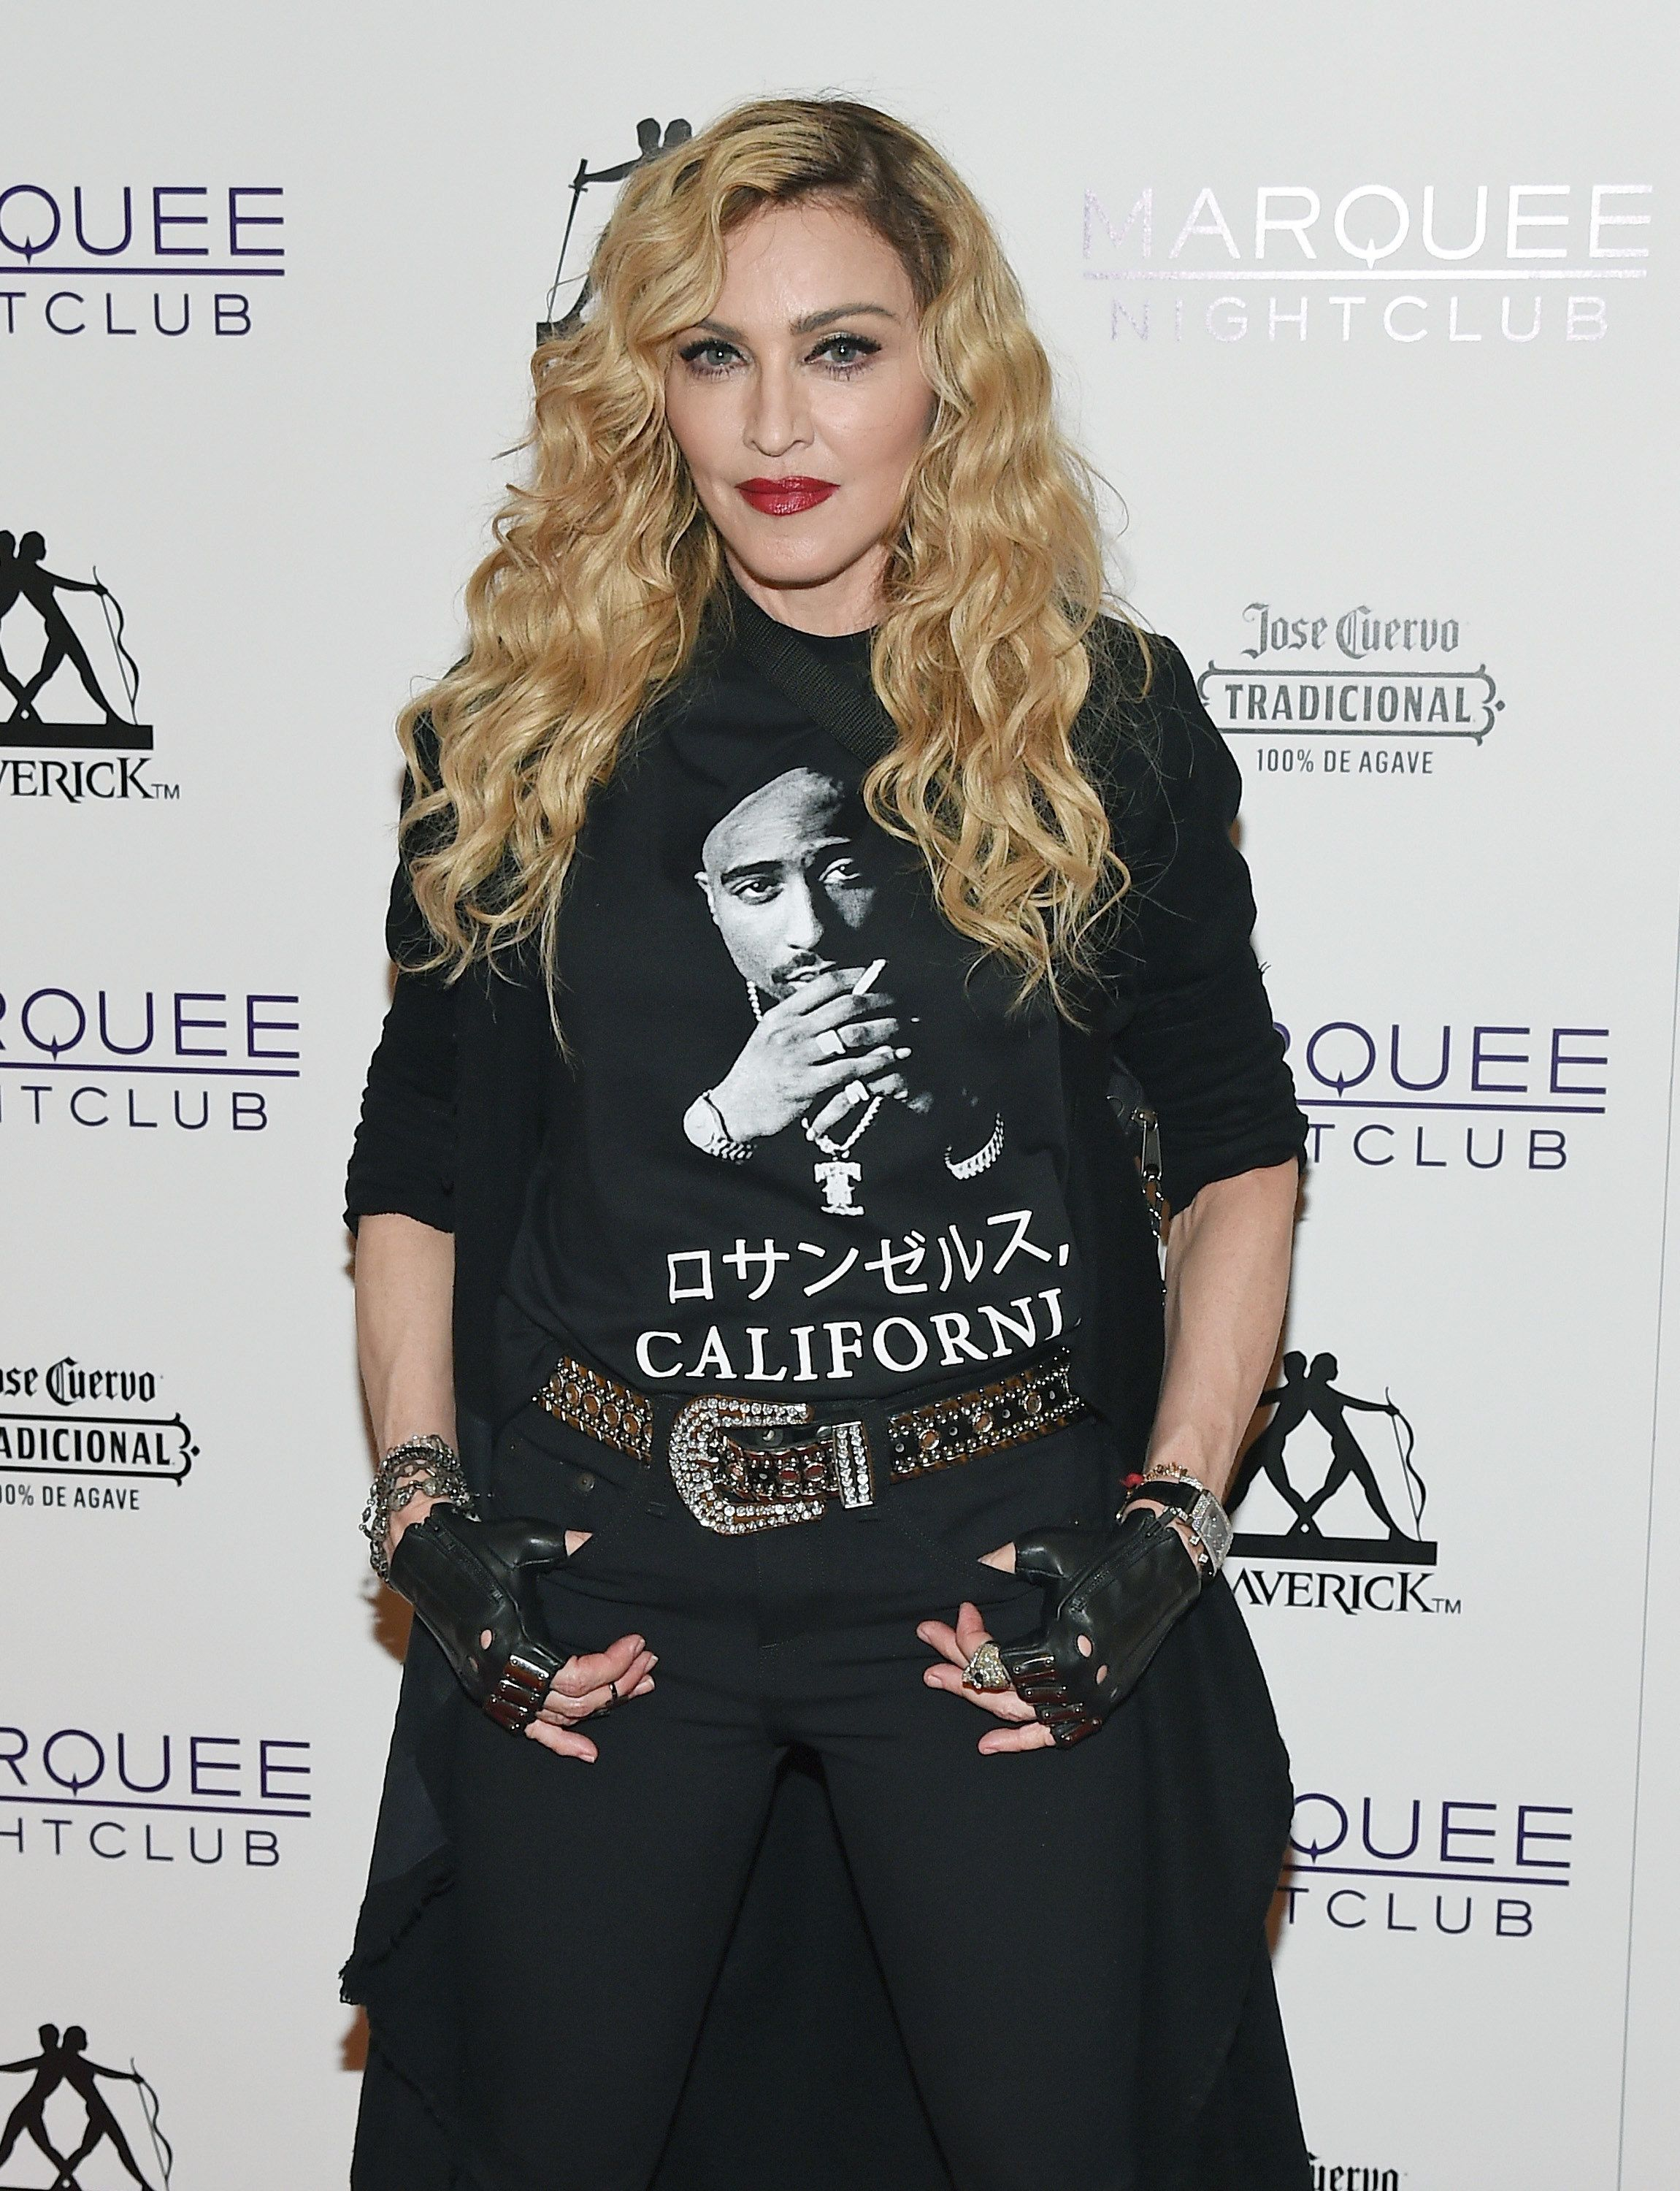 LAS VEGAS, NV - OCTOBER 25:  Singer Madonna arrives at the Marquee Nightclub at The Cosmopolitan of Las Vegas to host an after party for her Rebel Heart Tour concert stop on October 25, 2015 in Las Vegas, Nevada.  (Photo by Ethan Miller/Getty Images for ABA)